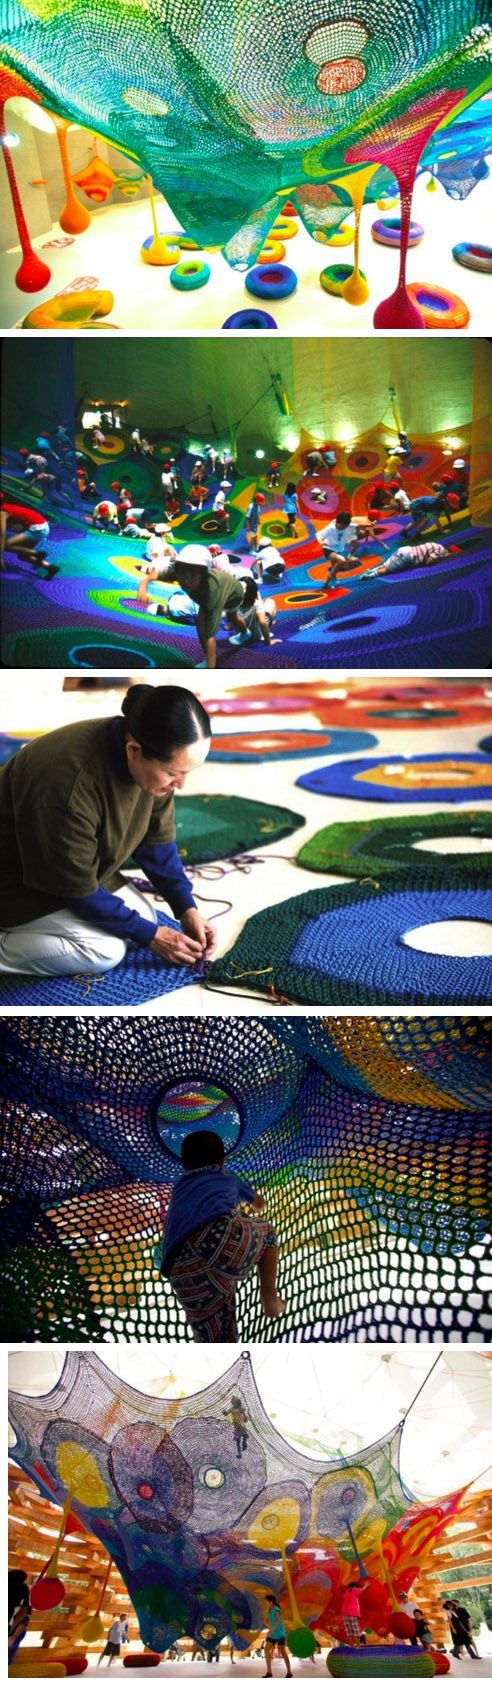 Japanese-born fiber artist Toshiko Horiuchi MacAdam's crocheted fabulous playgrounds for children ( http://netplayworks.com/NetPlayWorks/Projects/Projects.html ). Genius